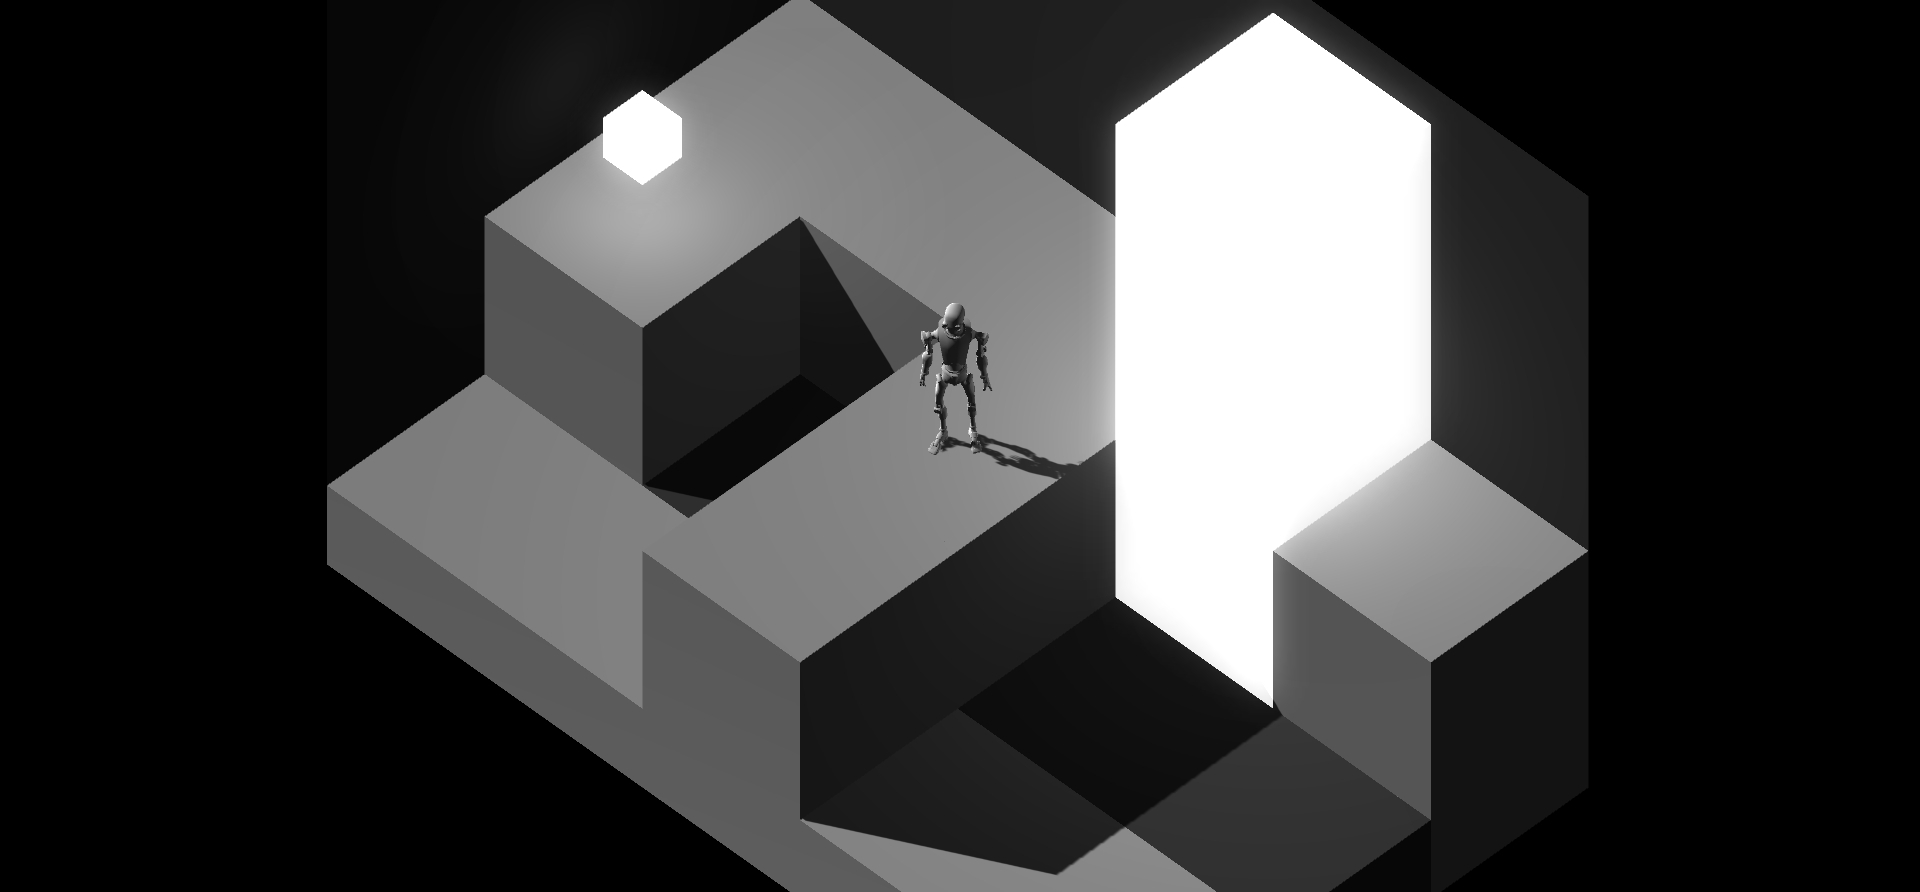 gamedevscreens, playmygame,  GIFs